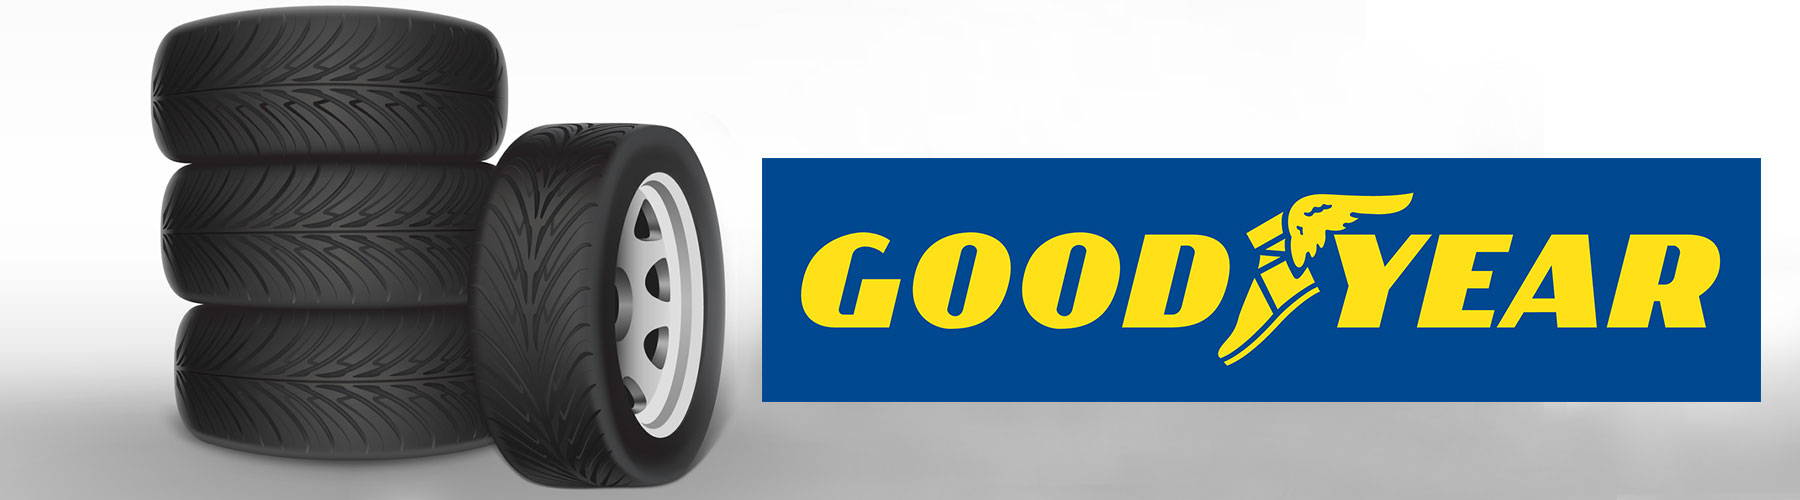 Goodyear logo and Tyres